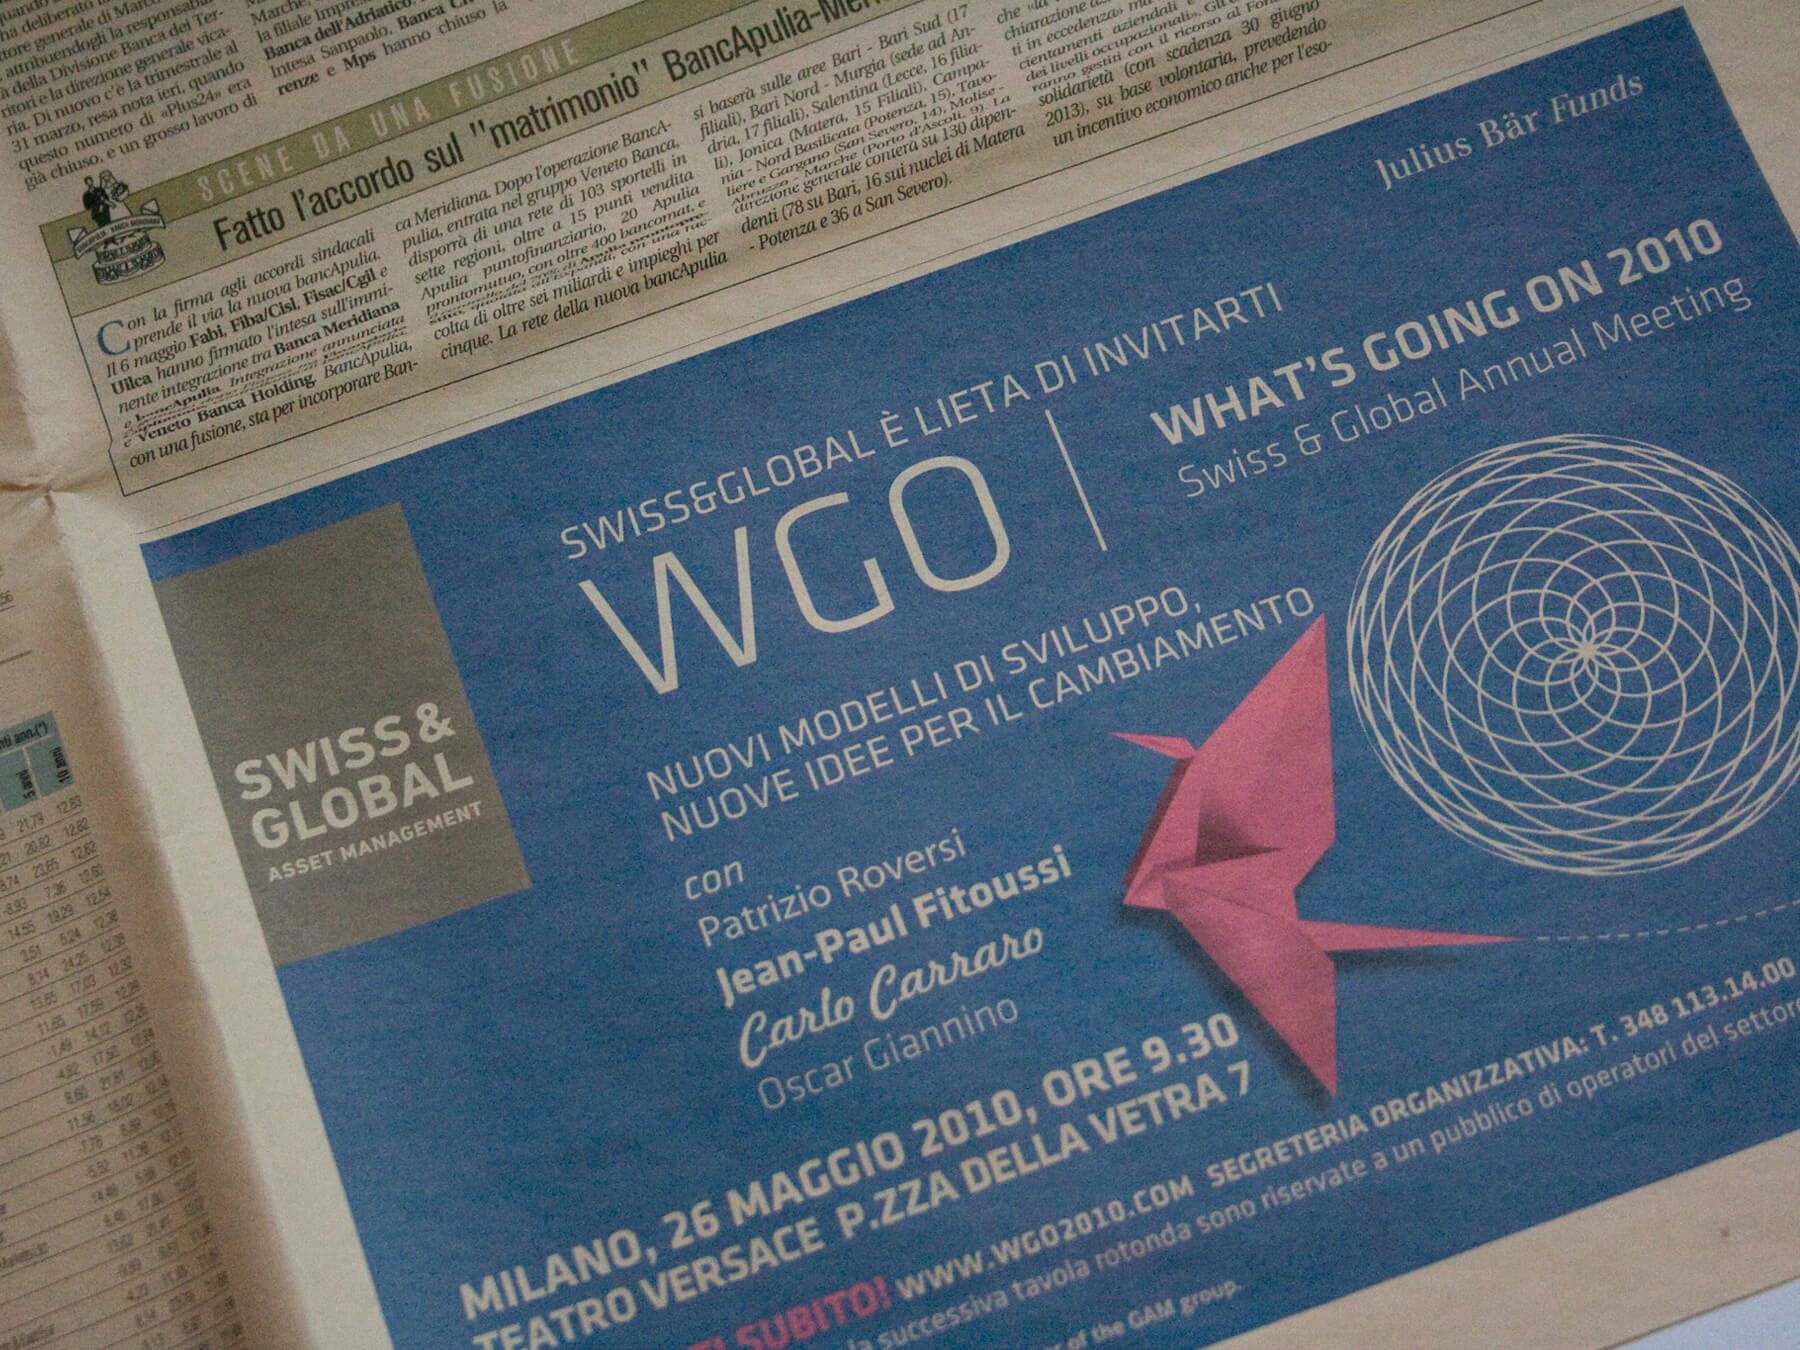 WGO What's Going On: advertising su Il Sole 24 Ore